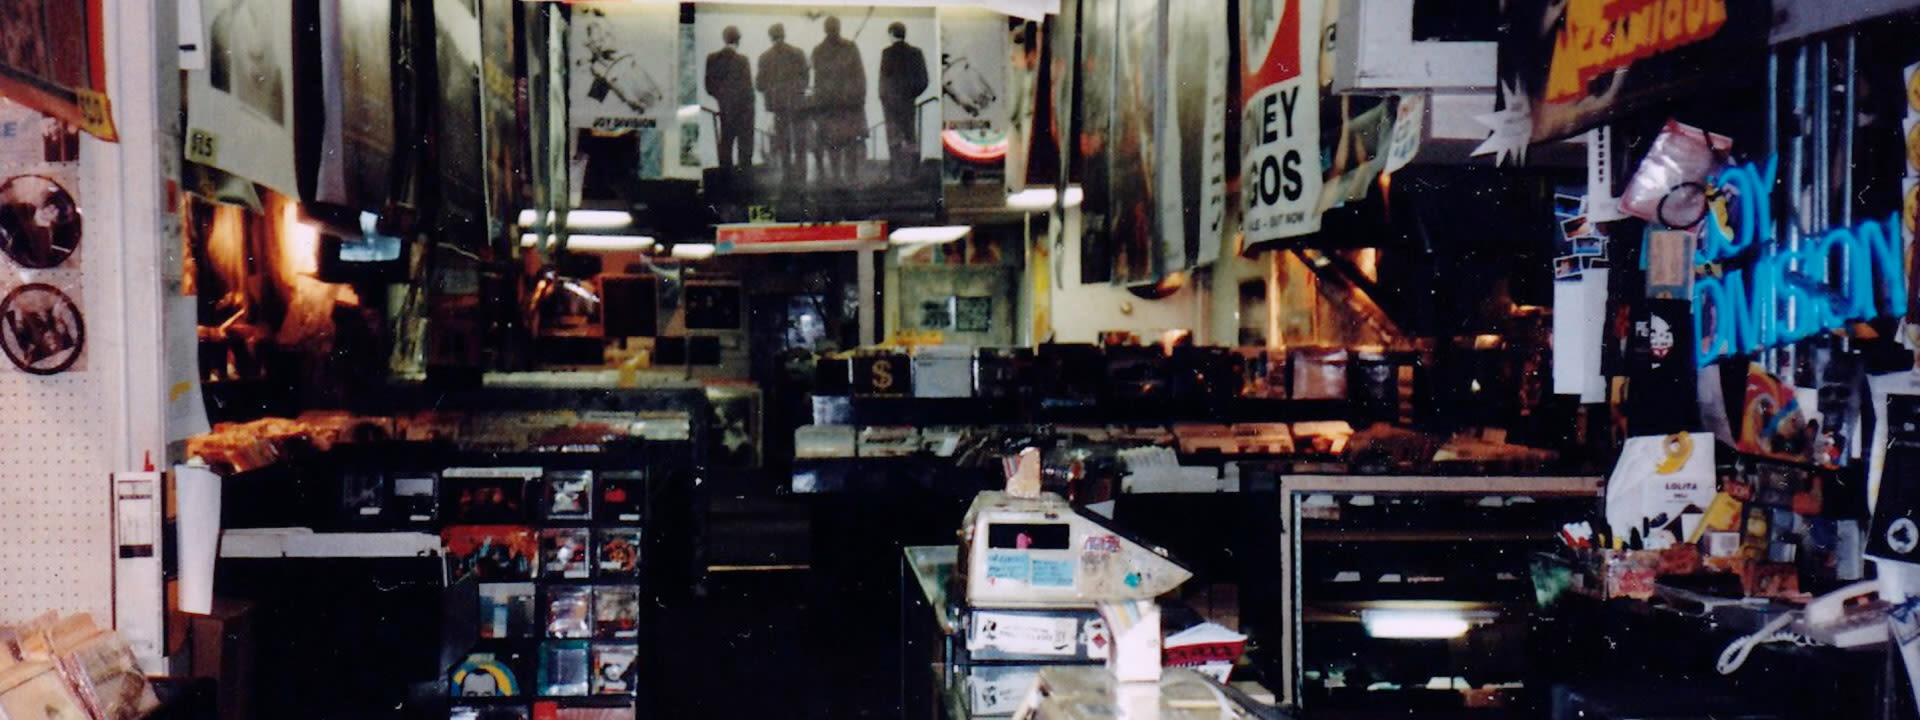 How Wax Trax Invented a Music Scene and Built a Community